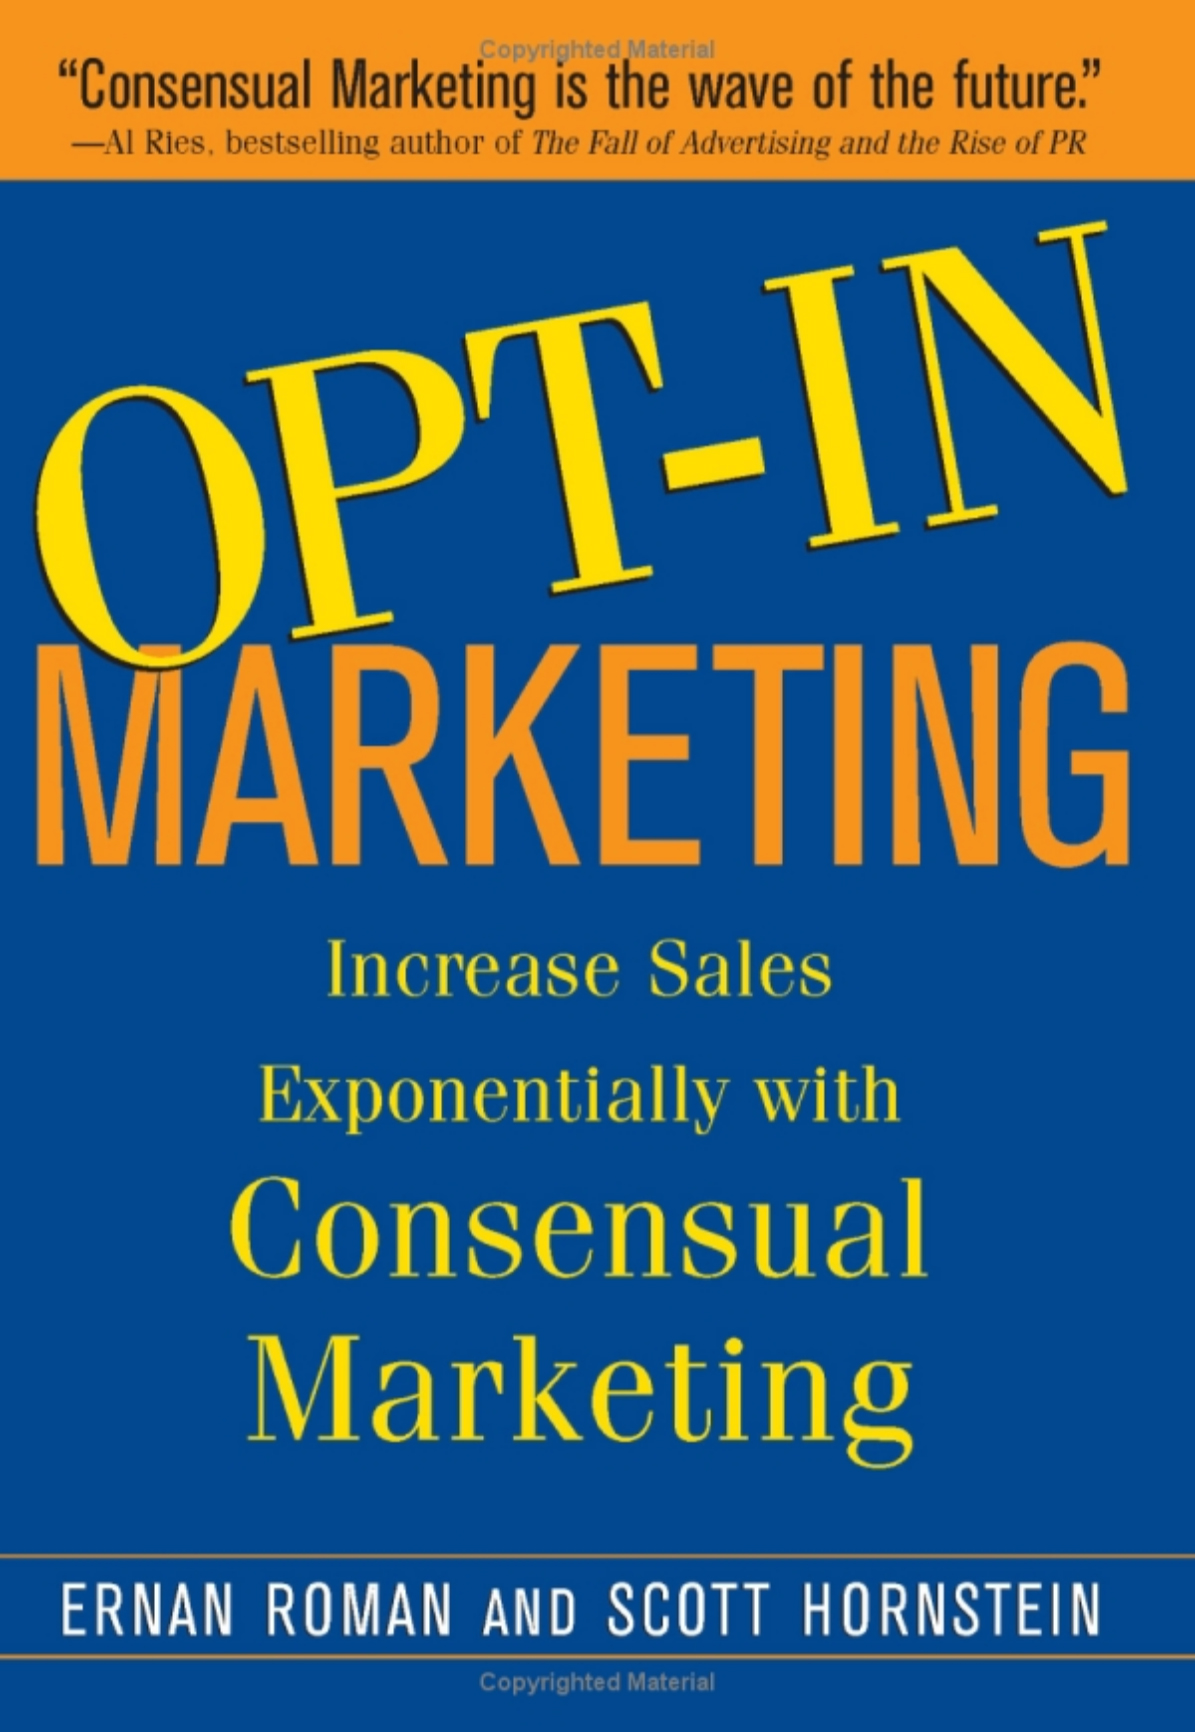 Opt-In Marketing: Increase sales exponentially with Consensual Marketing. by Ernan Roman and Scott Hornstein